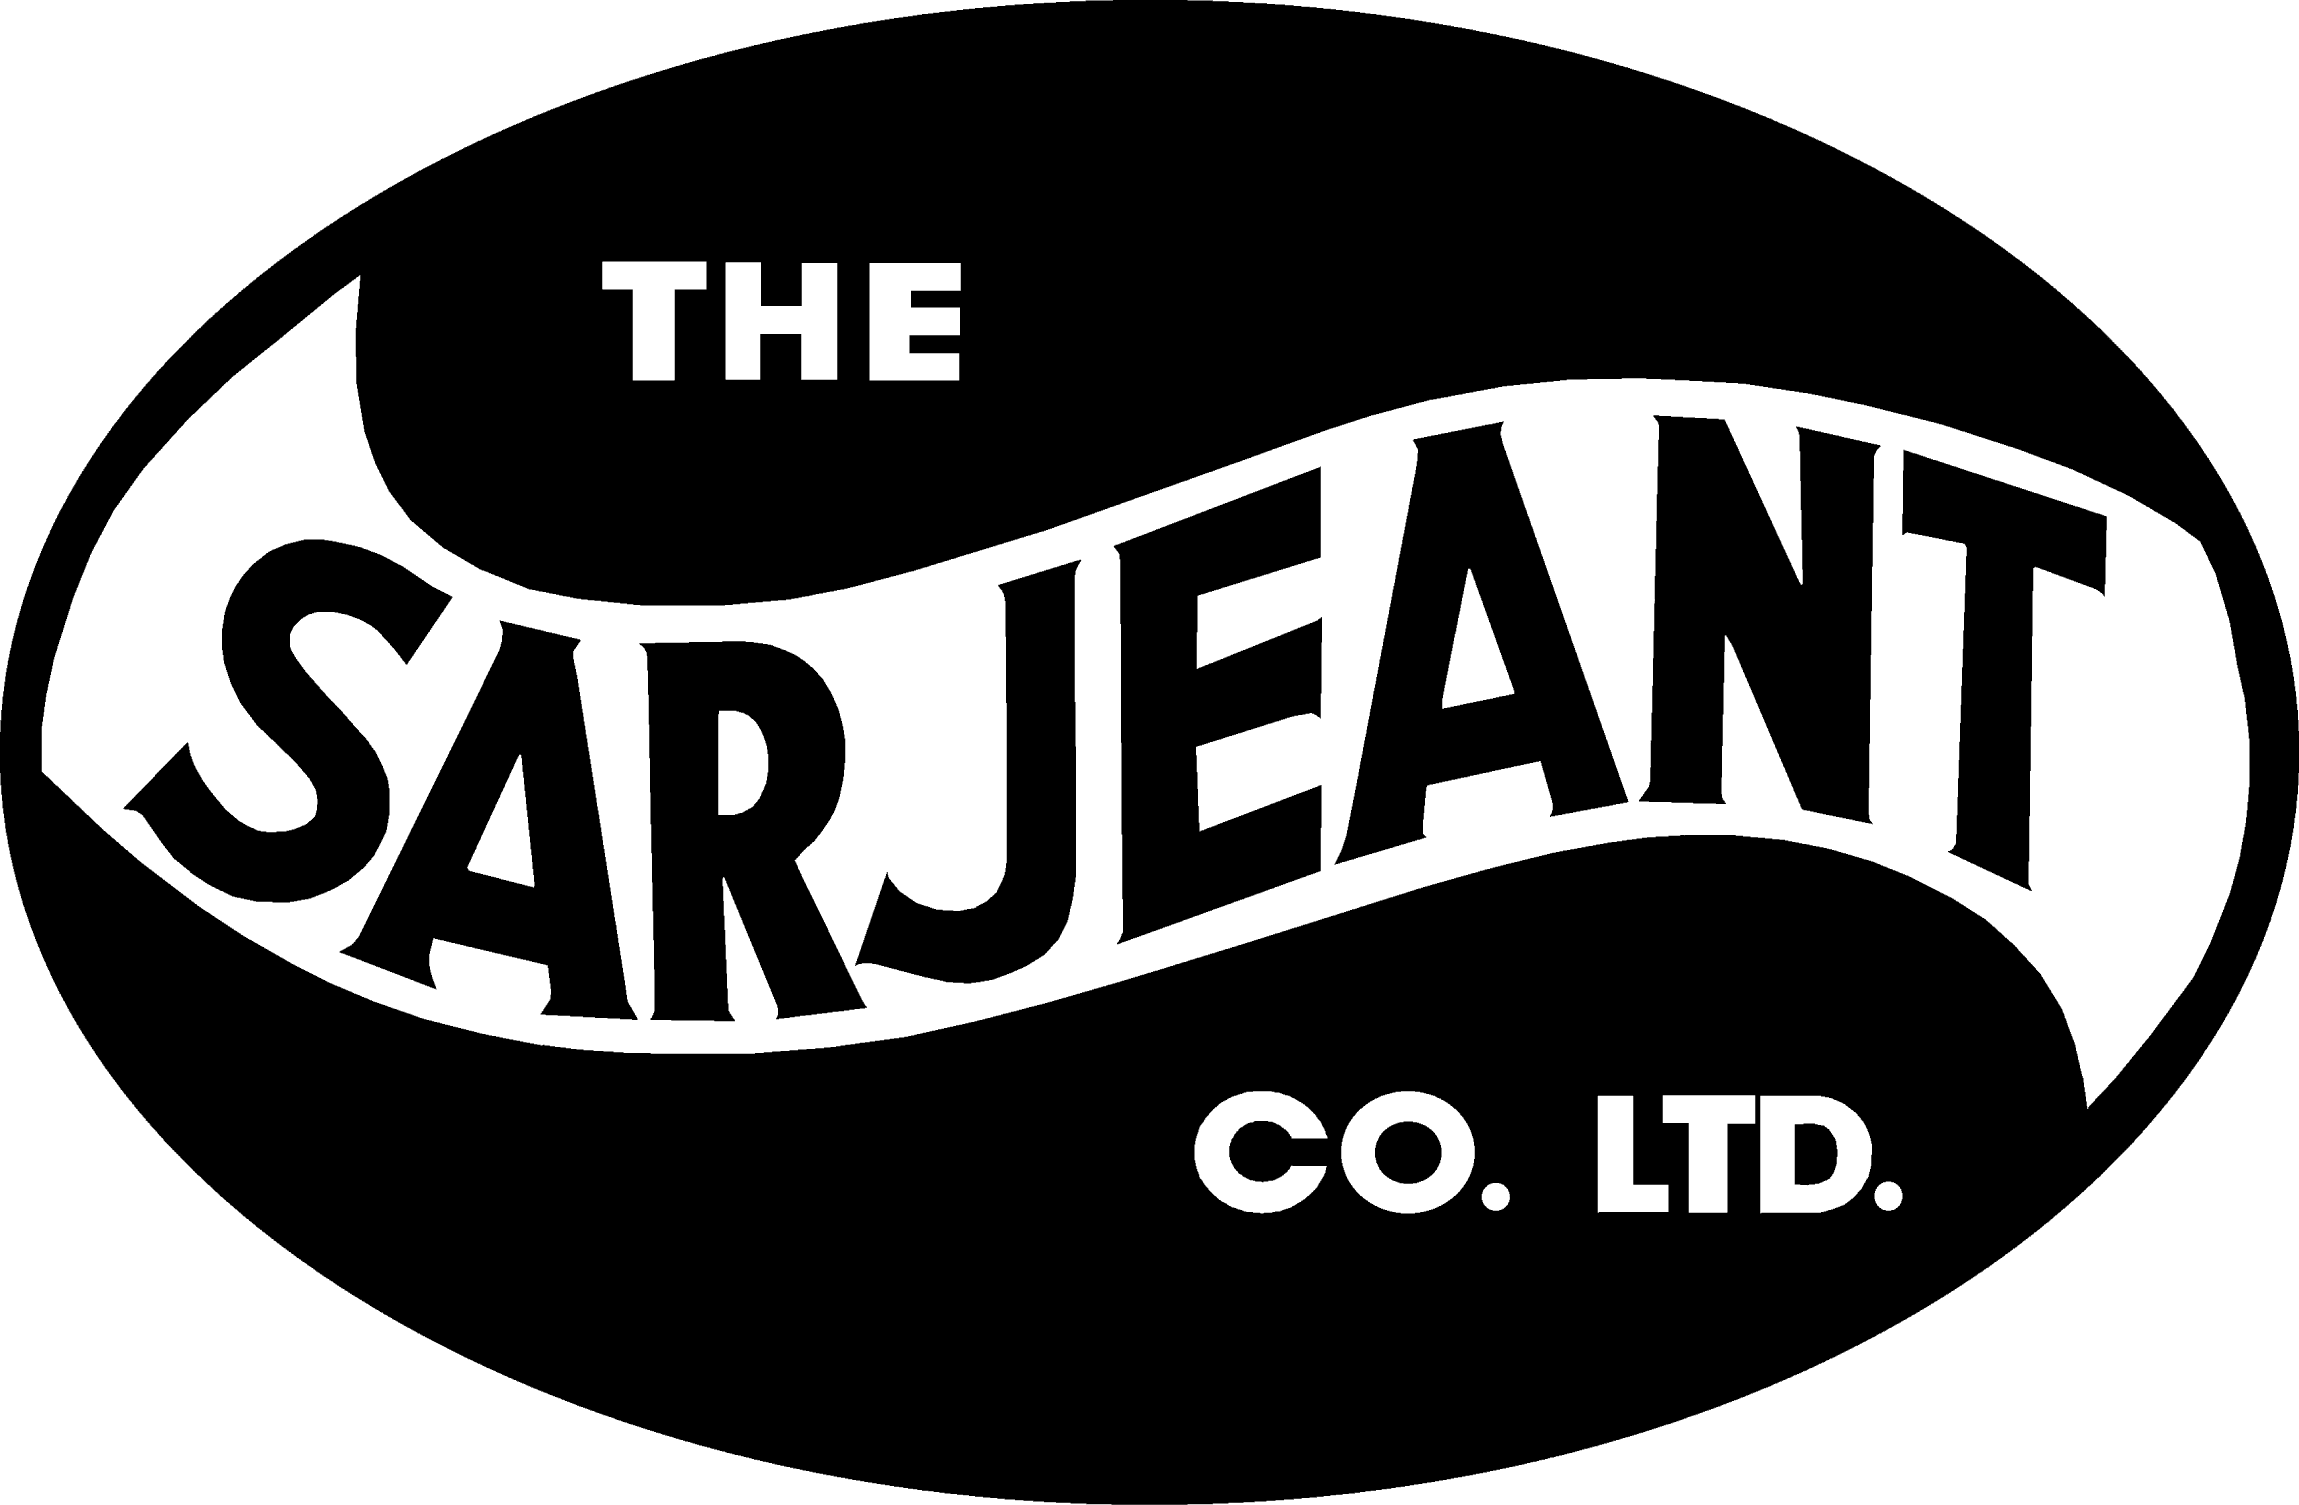 The Sarjeant Company logo